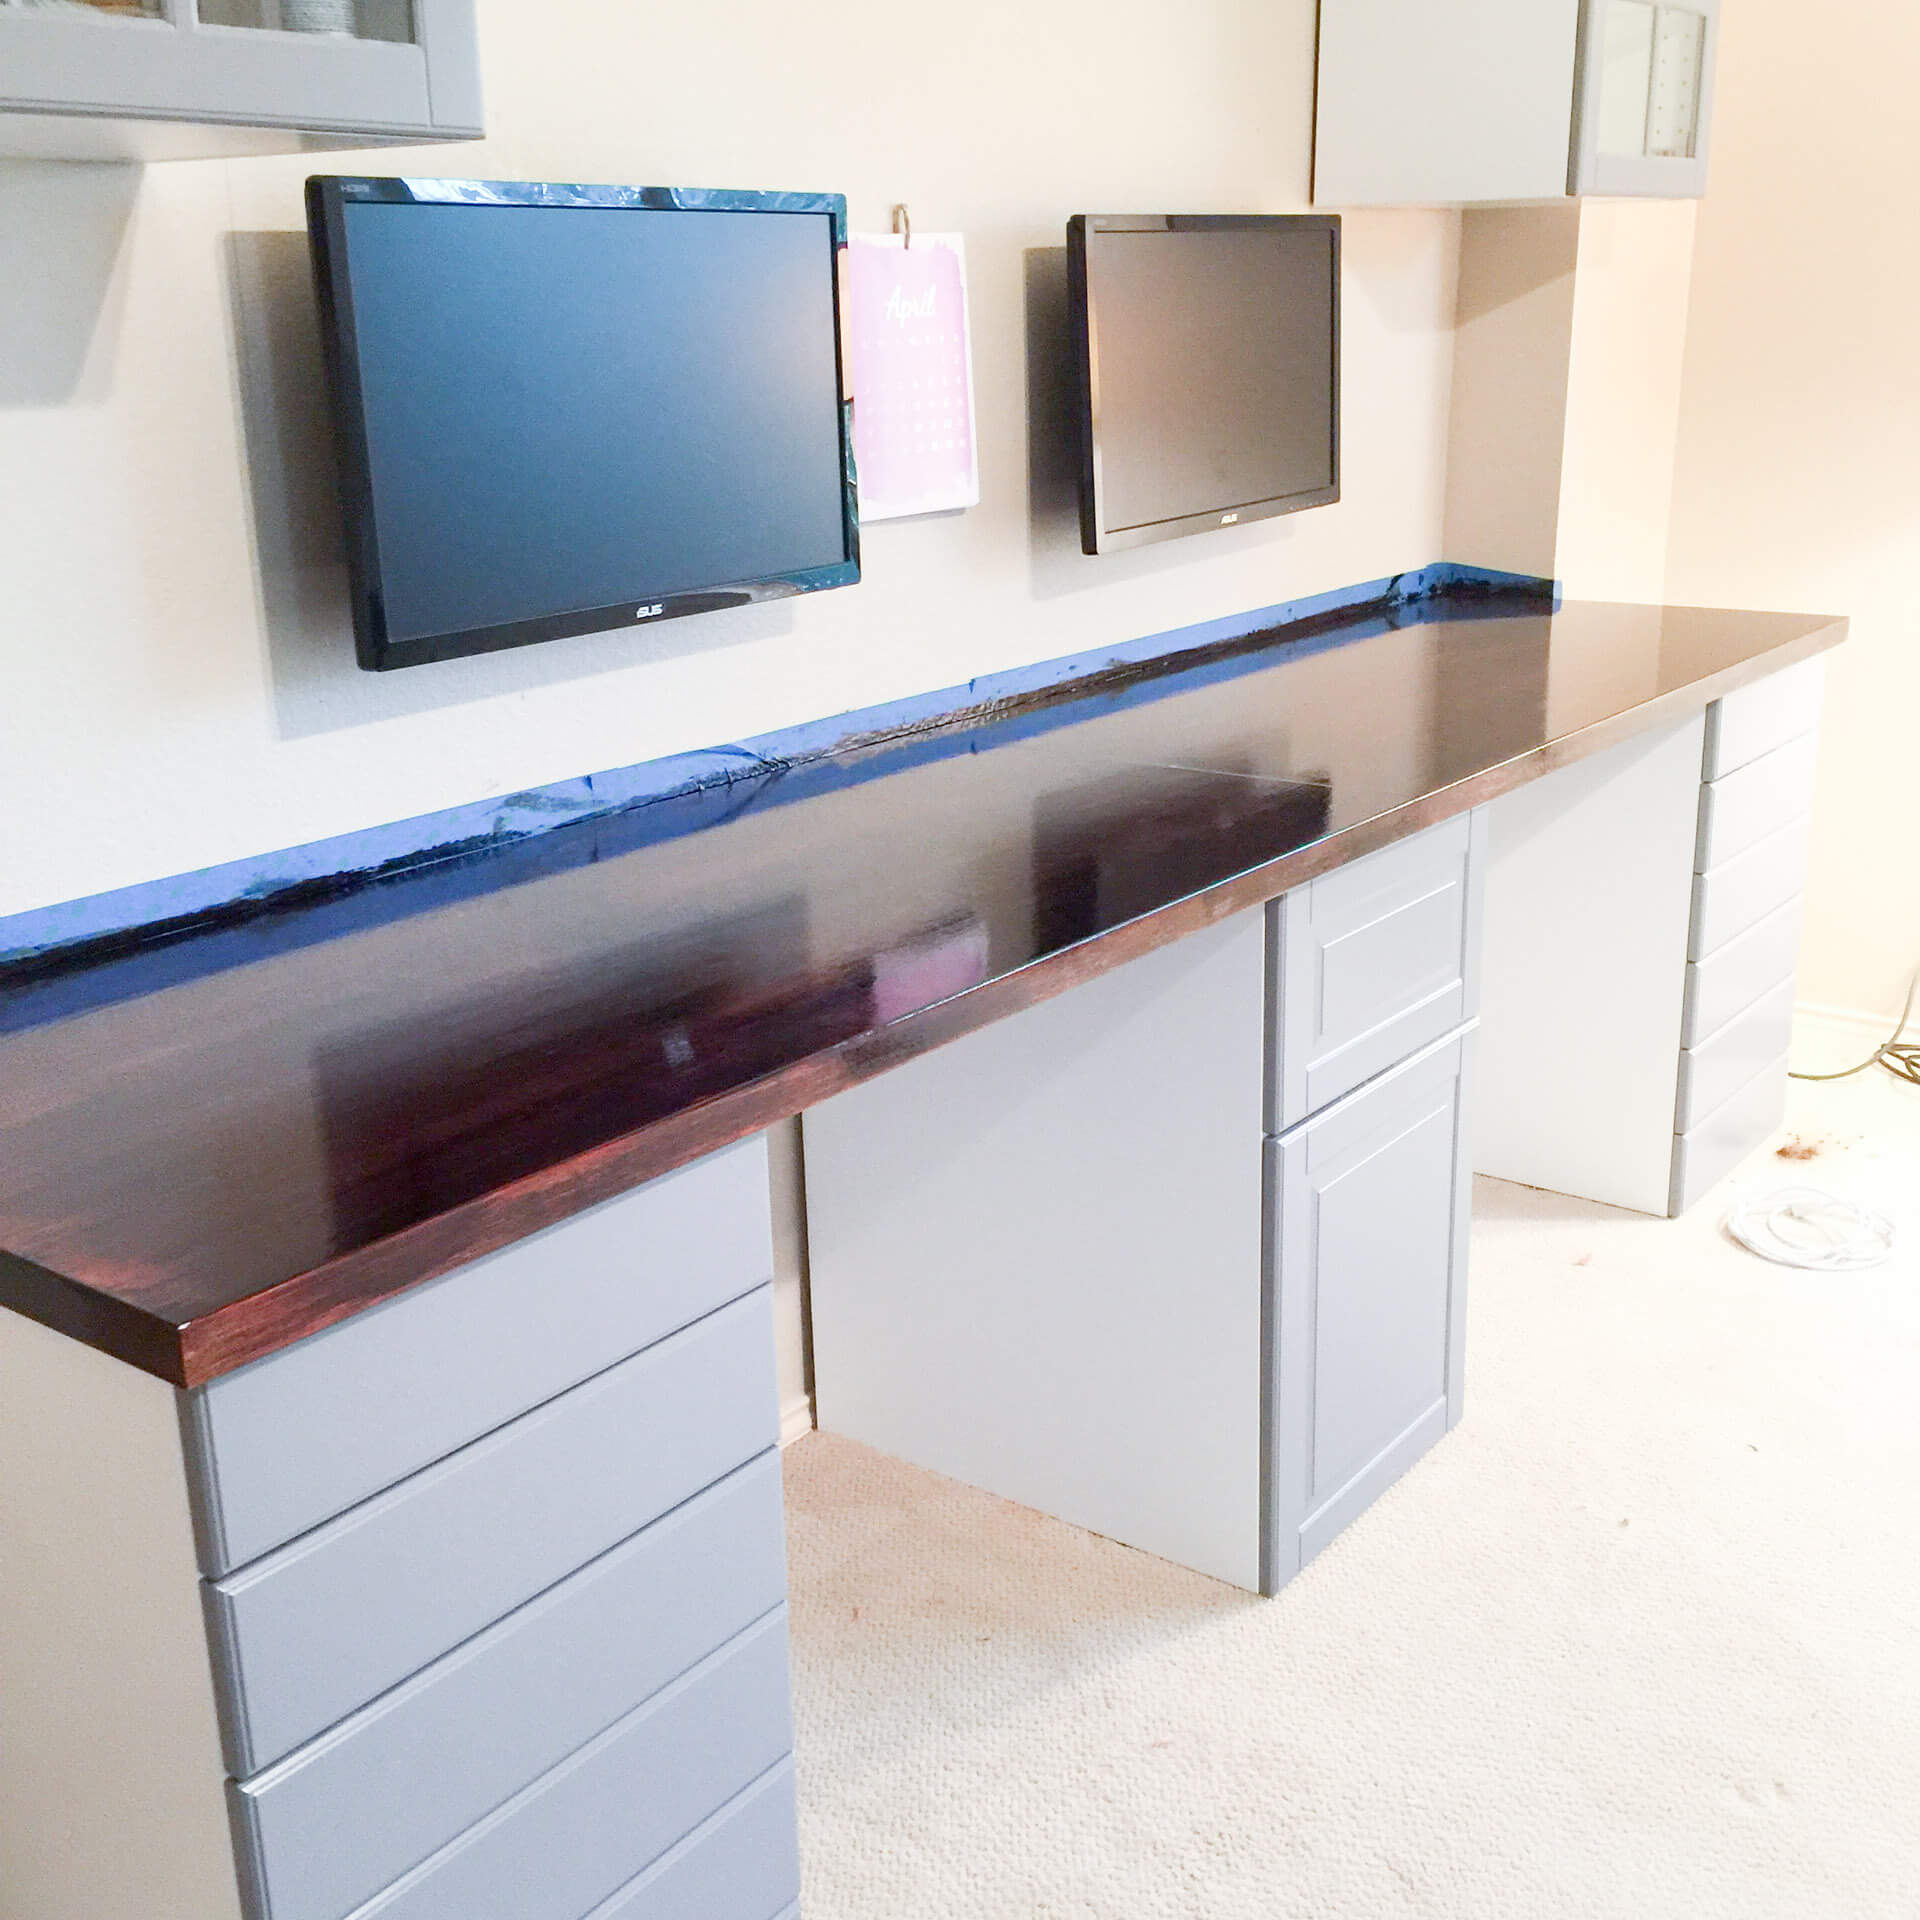 How To Make A Desk From Kitchen Cabinets Part One Diy Without Fear